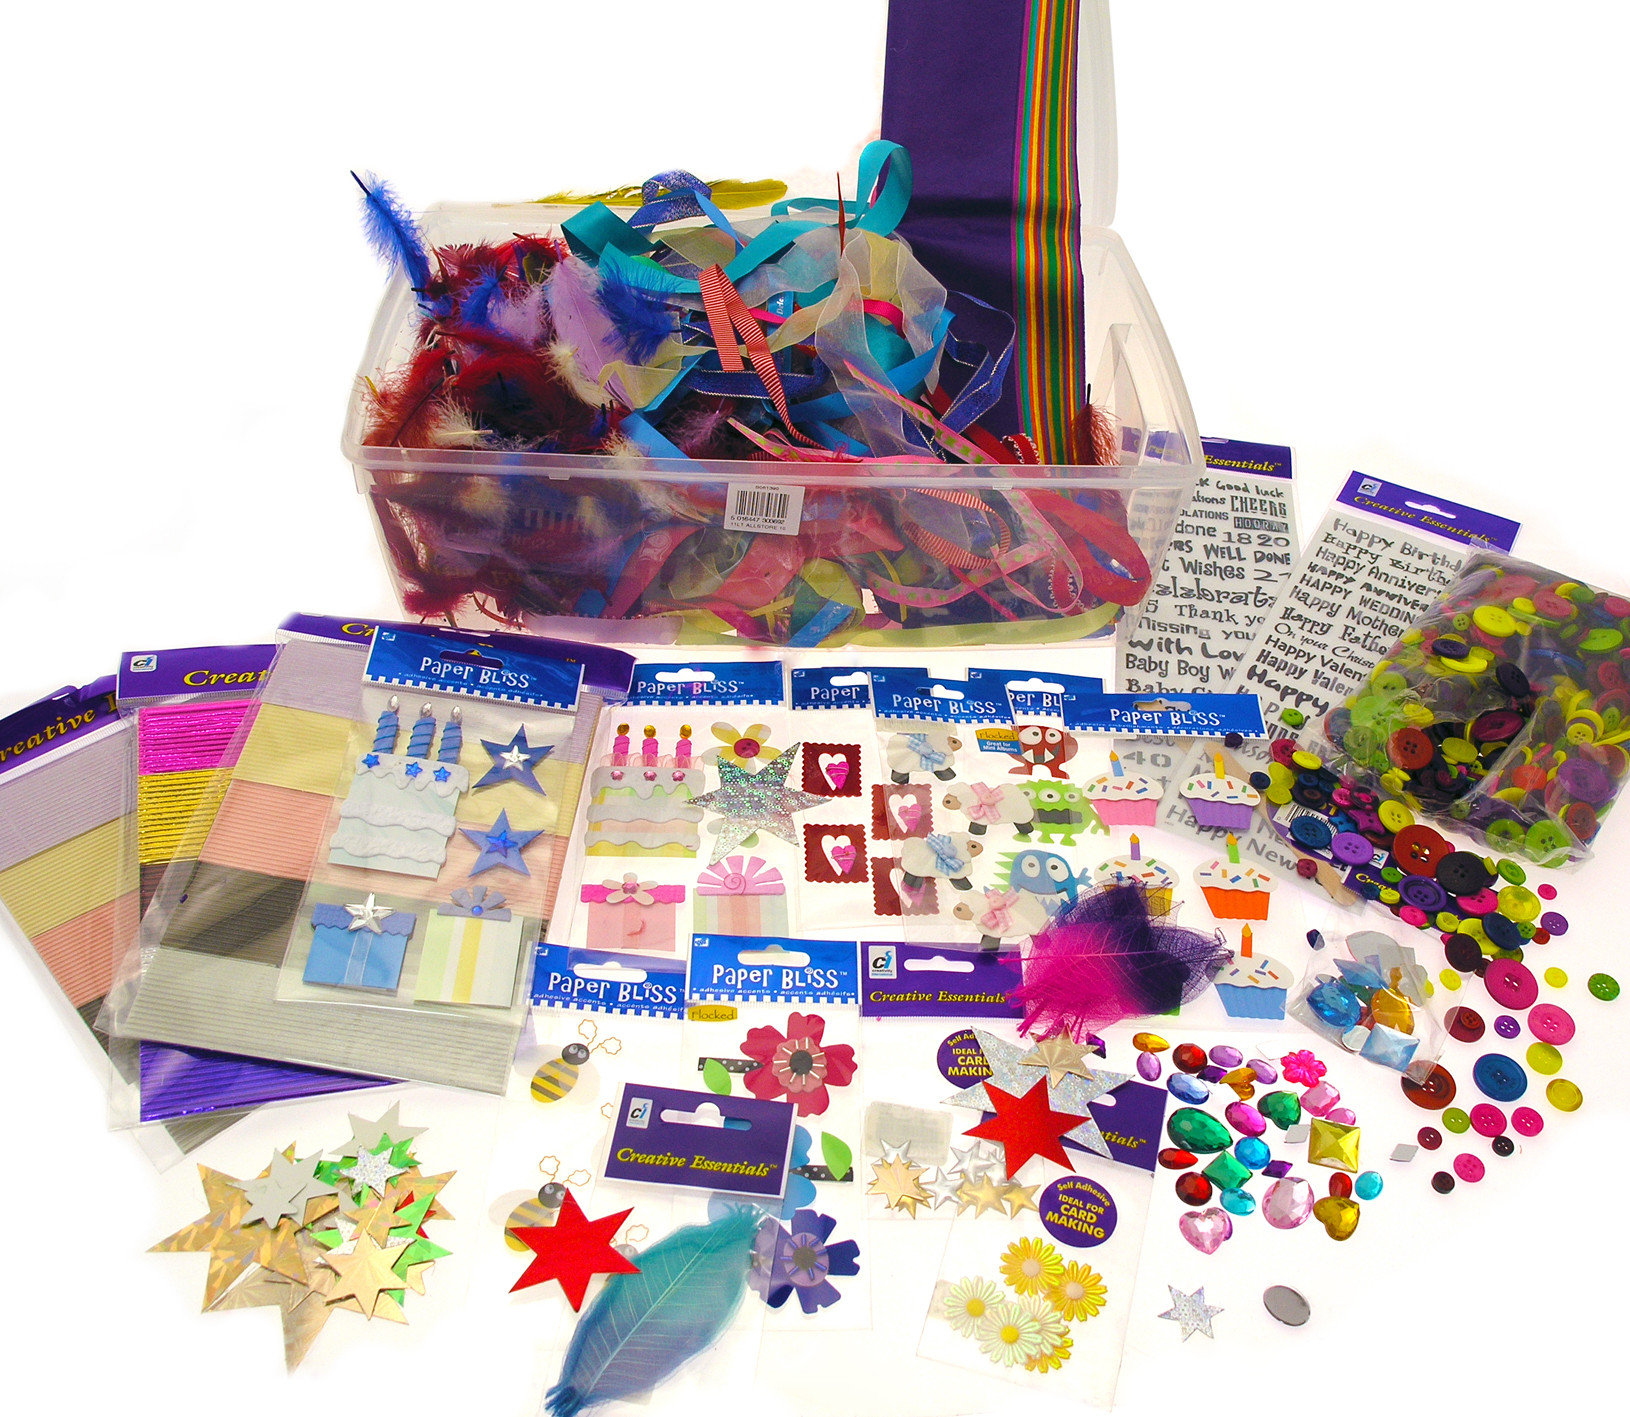 Craft Kit For Kids  Bumper craft kits ideal for a crafty kids party